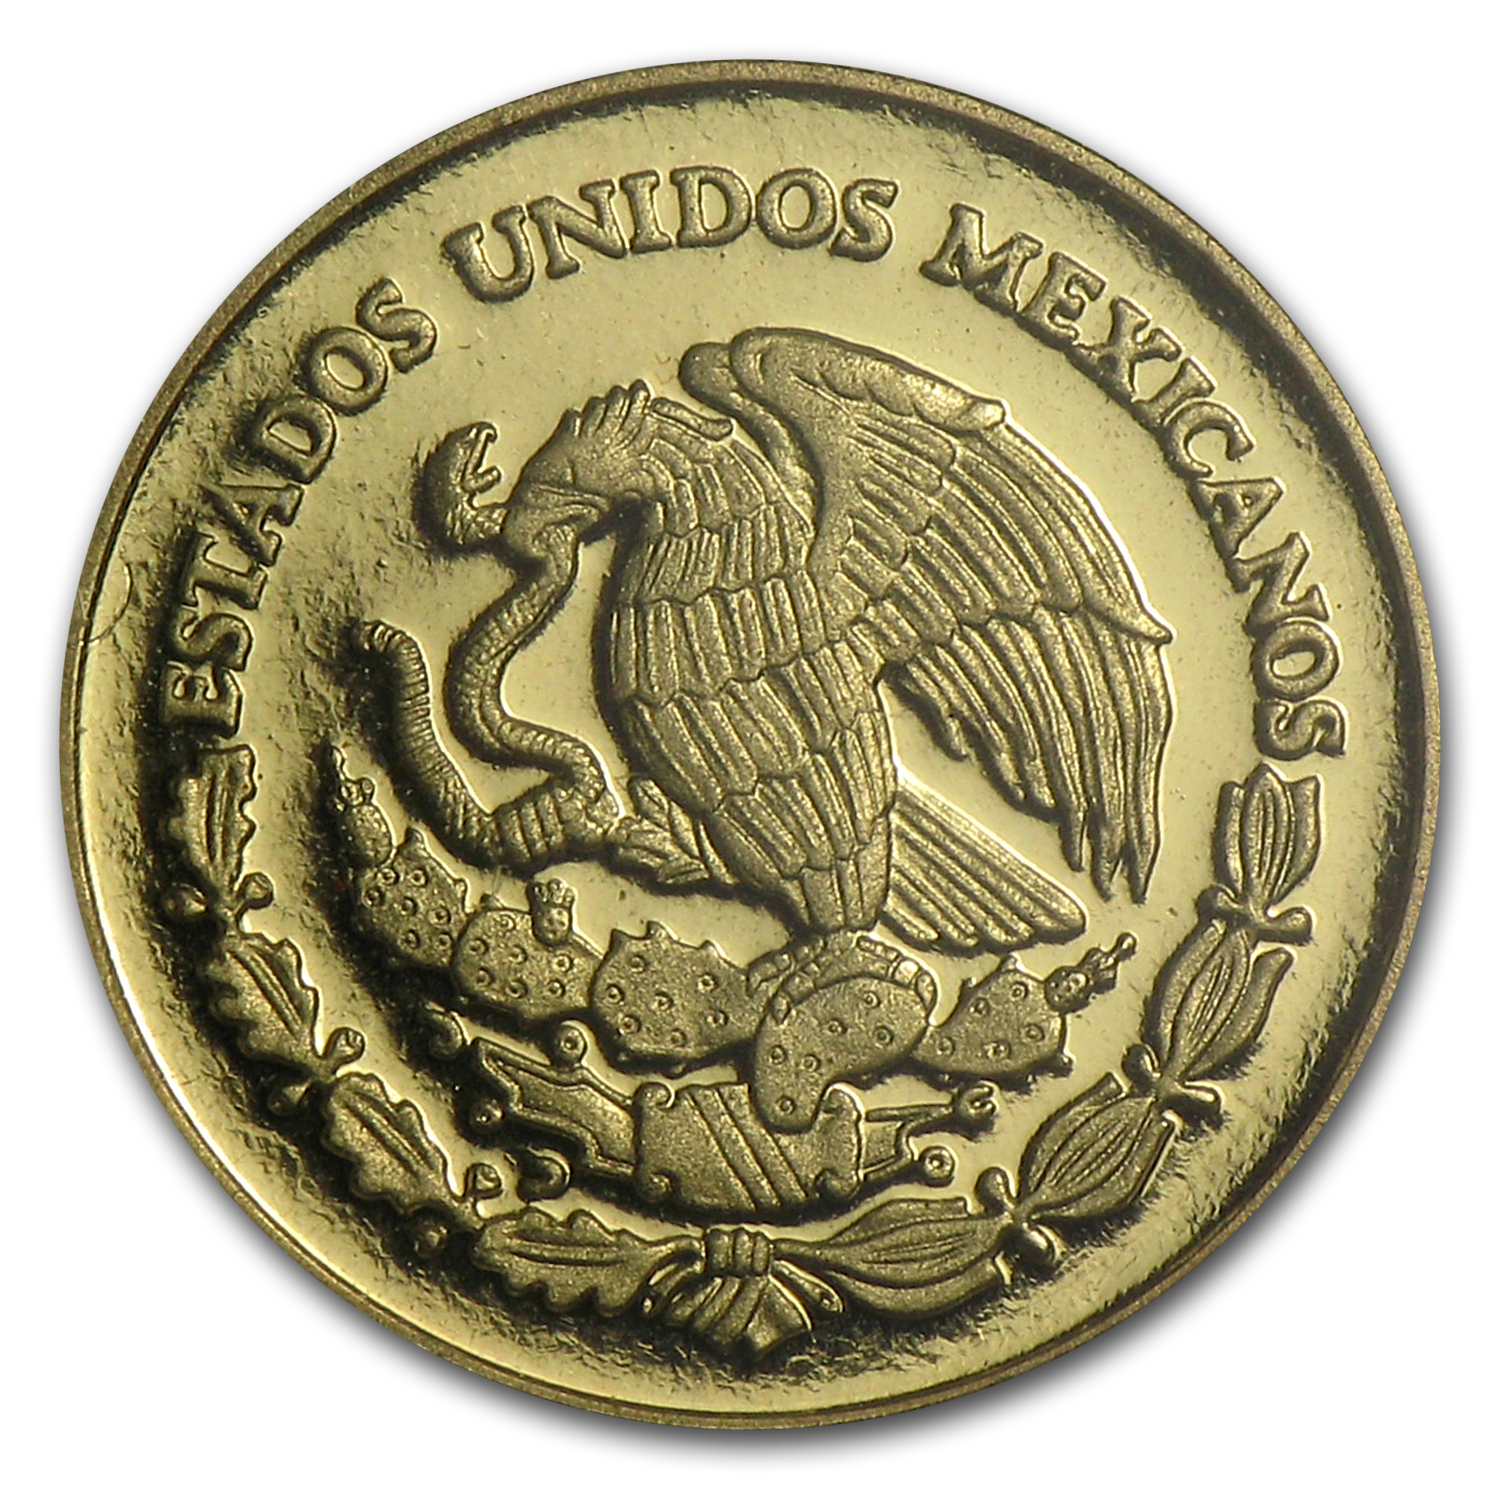 2011 Mexico Gold Español e Indígena Proof (Cacao bean case)